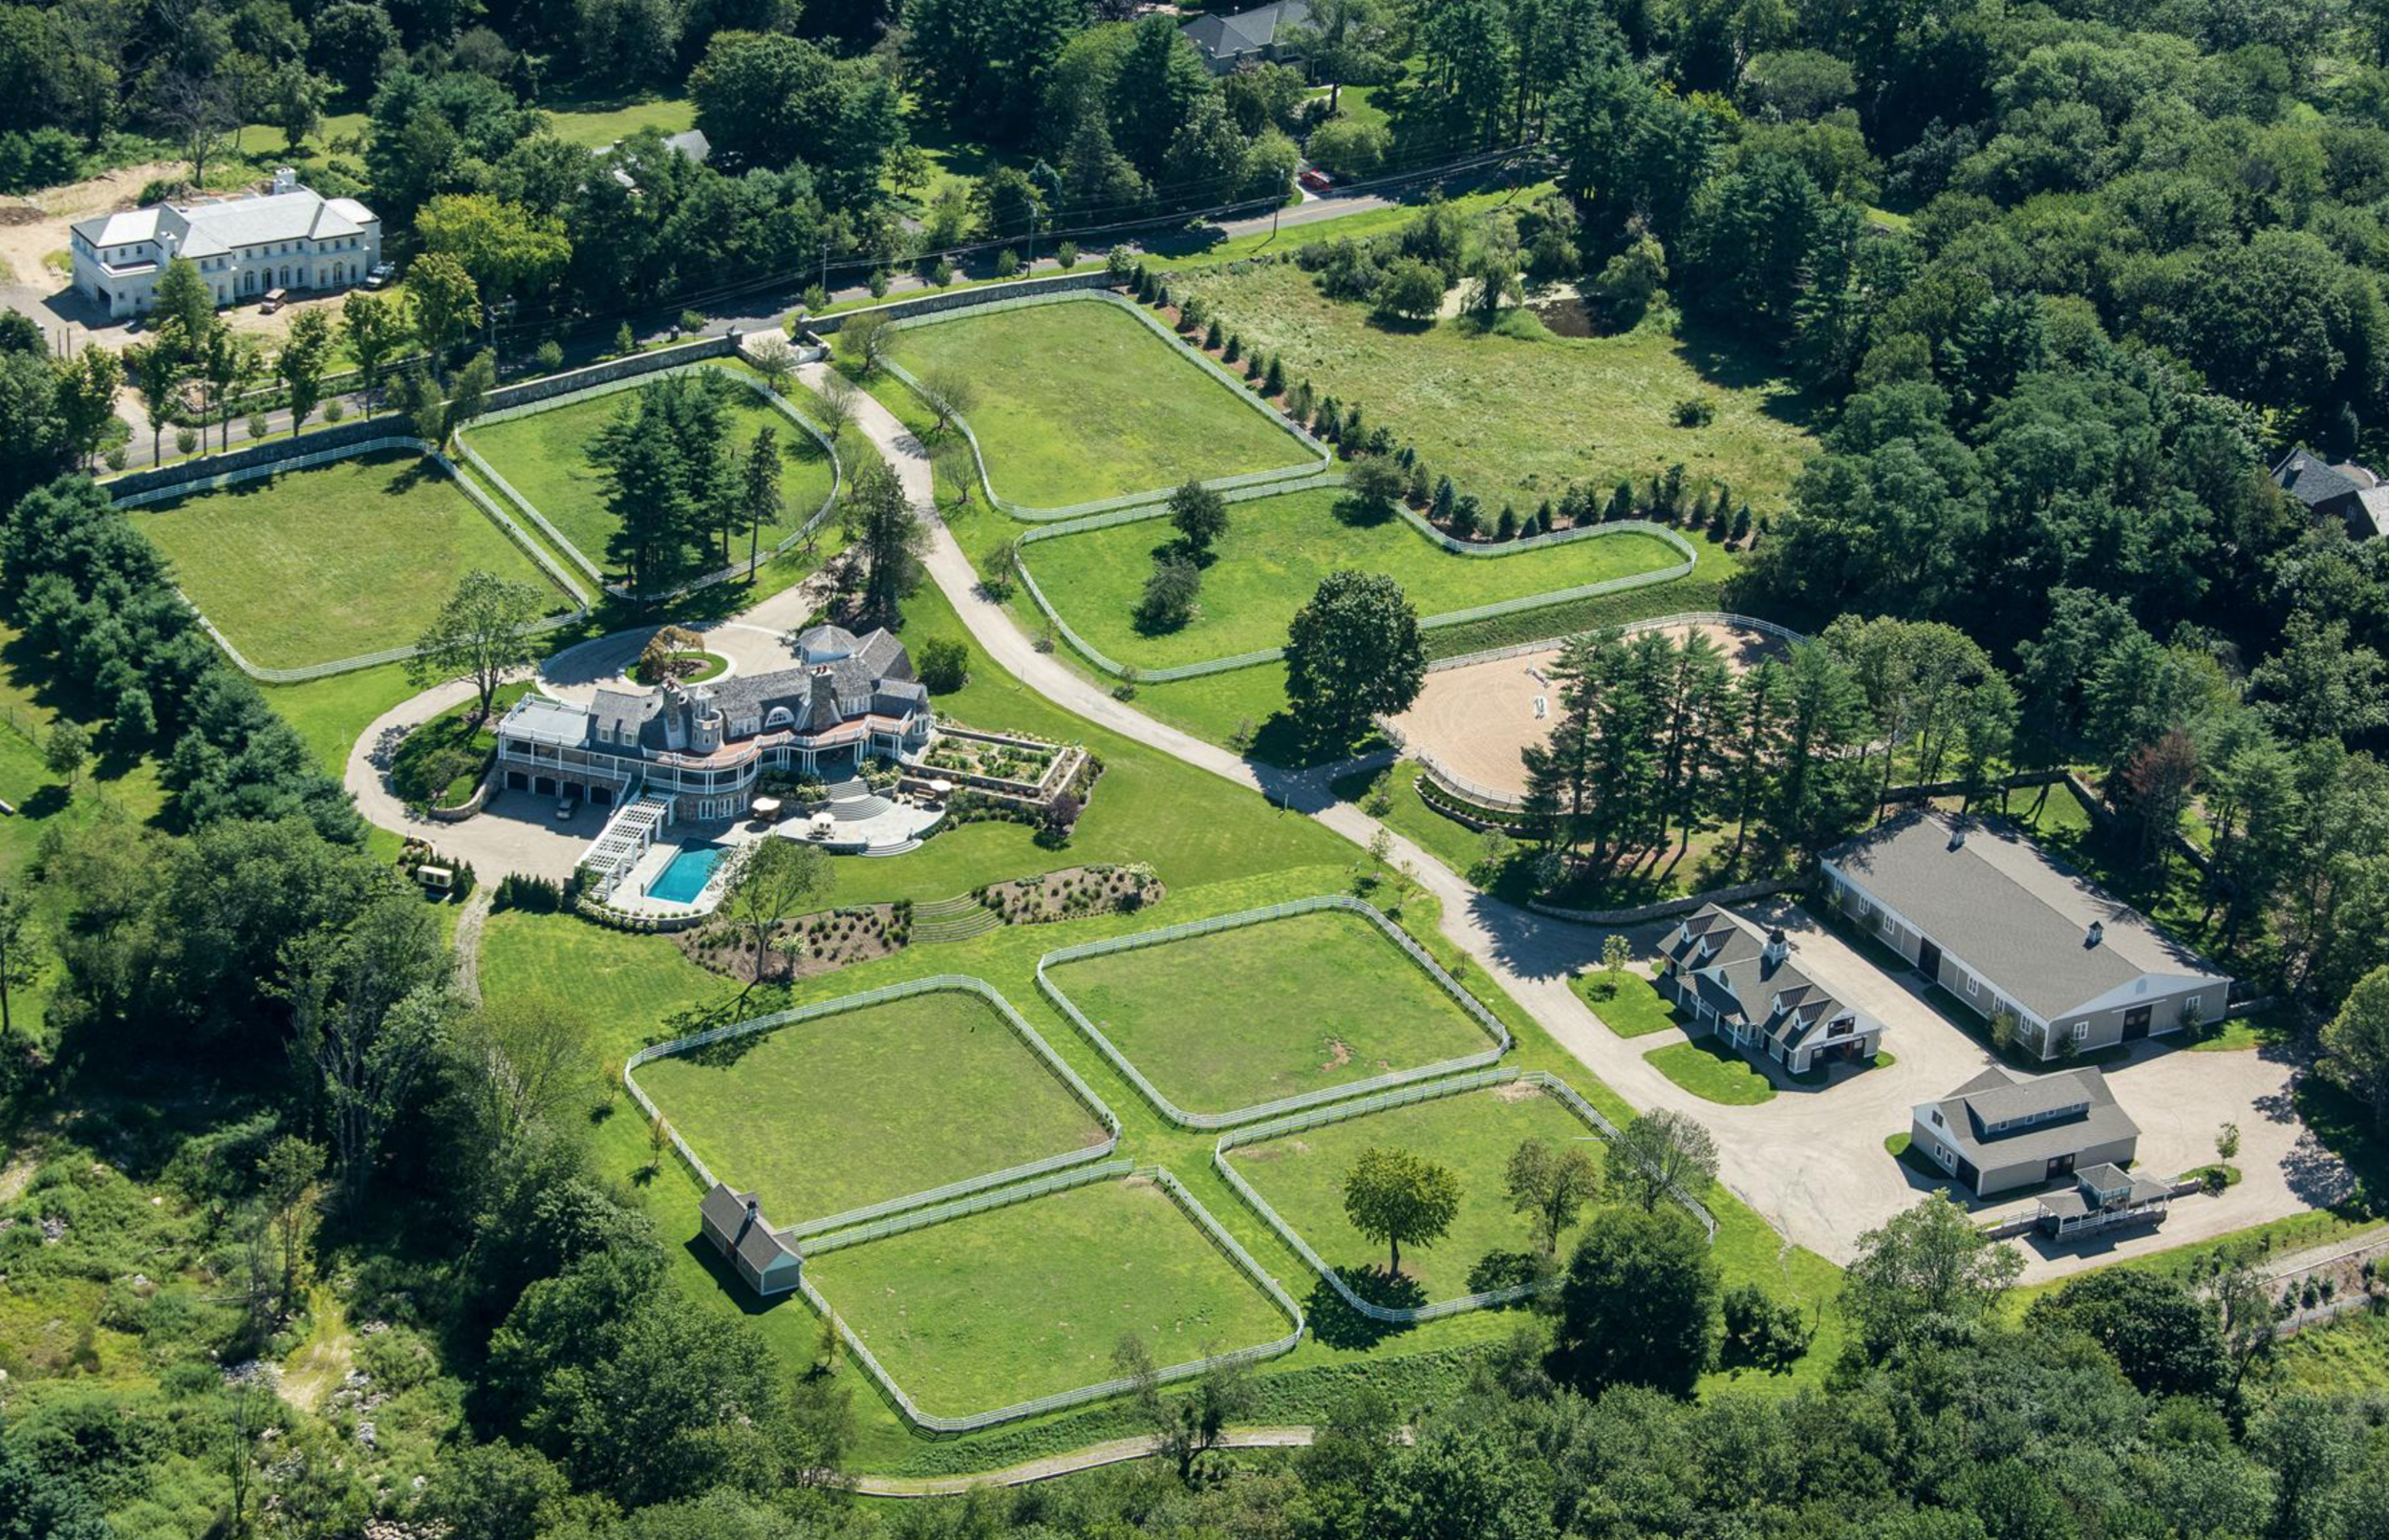 Featured Listing: Stunning Taconic Road Equestrian Estate in Greenwich Drops Price $6.75 Million